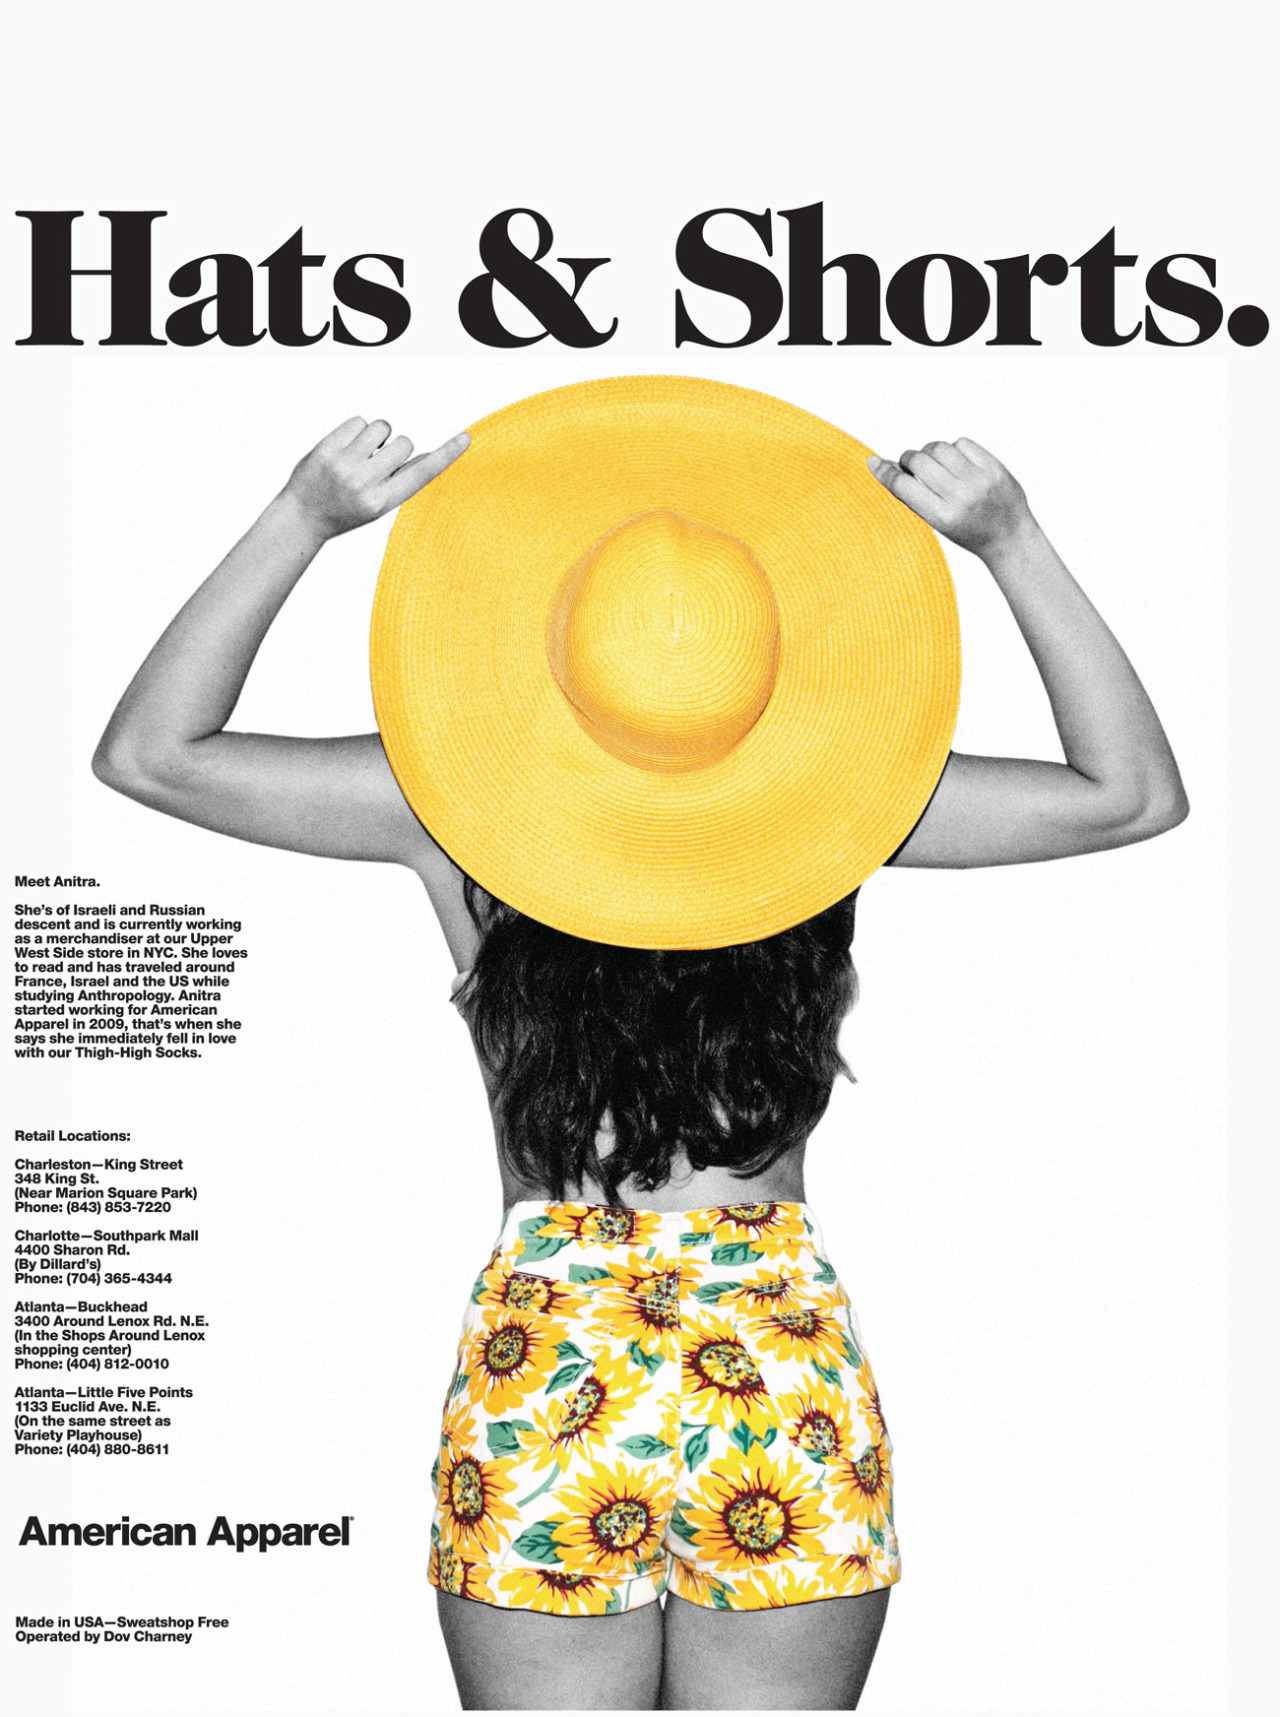 americanapparel:  Hats & Shorts. April 2013.